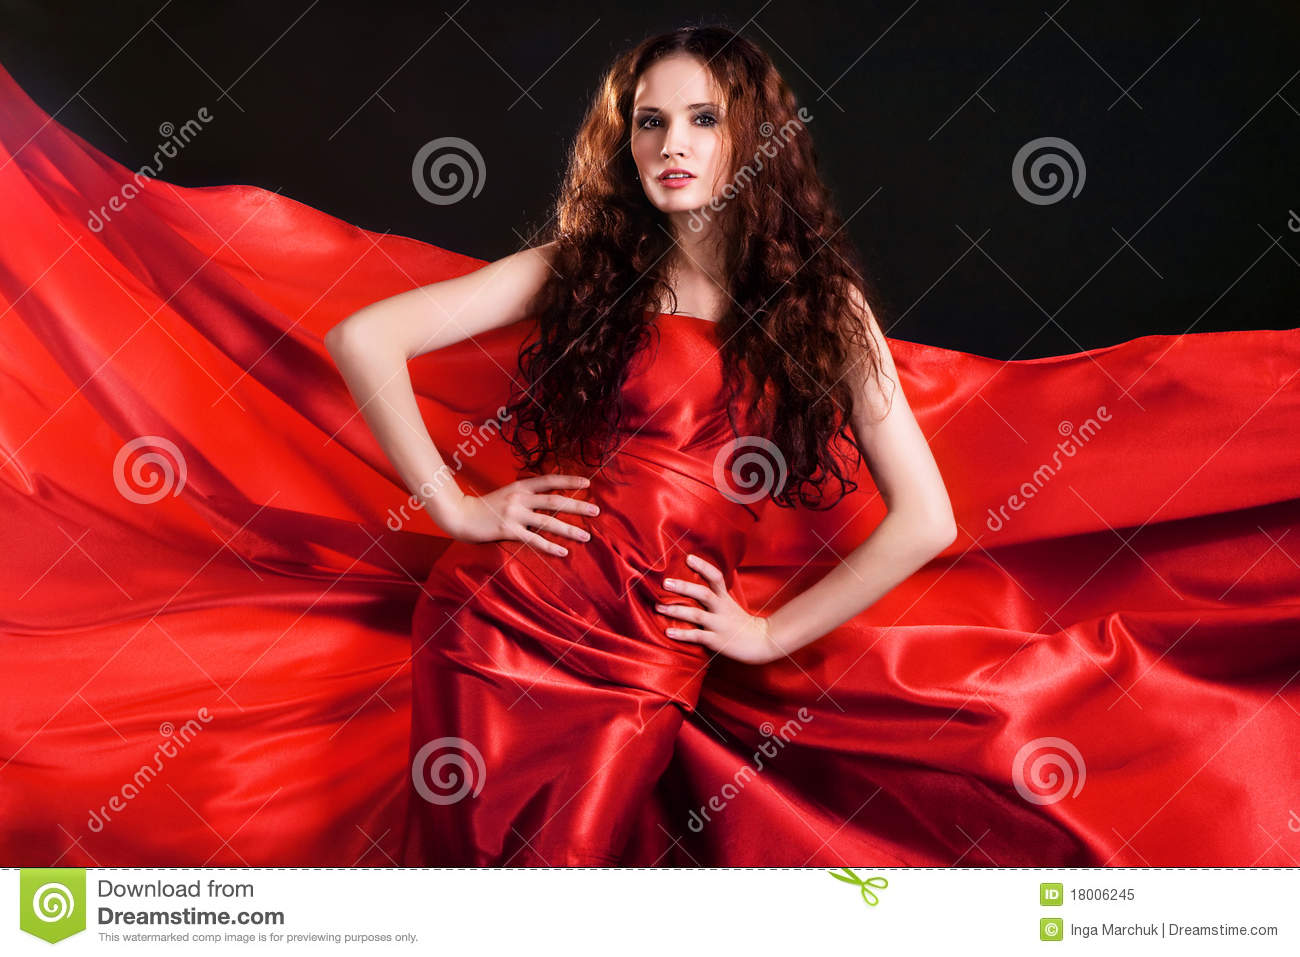 Gorgeous model in red clothing